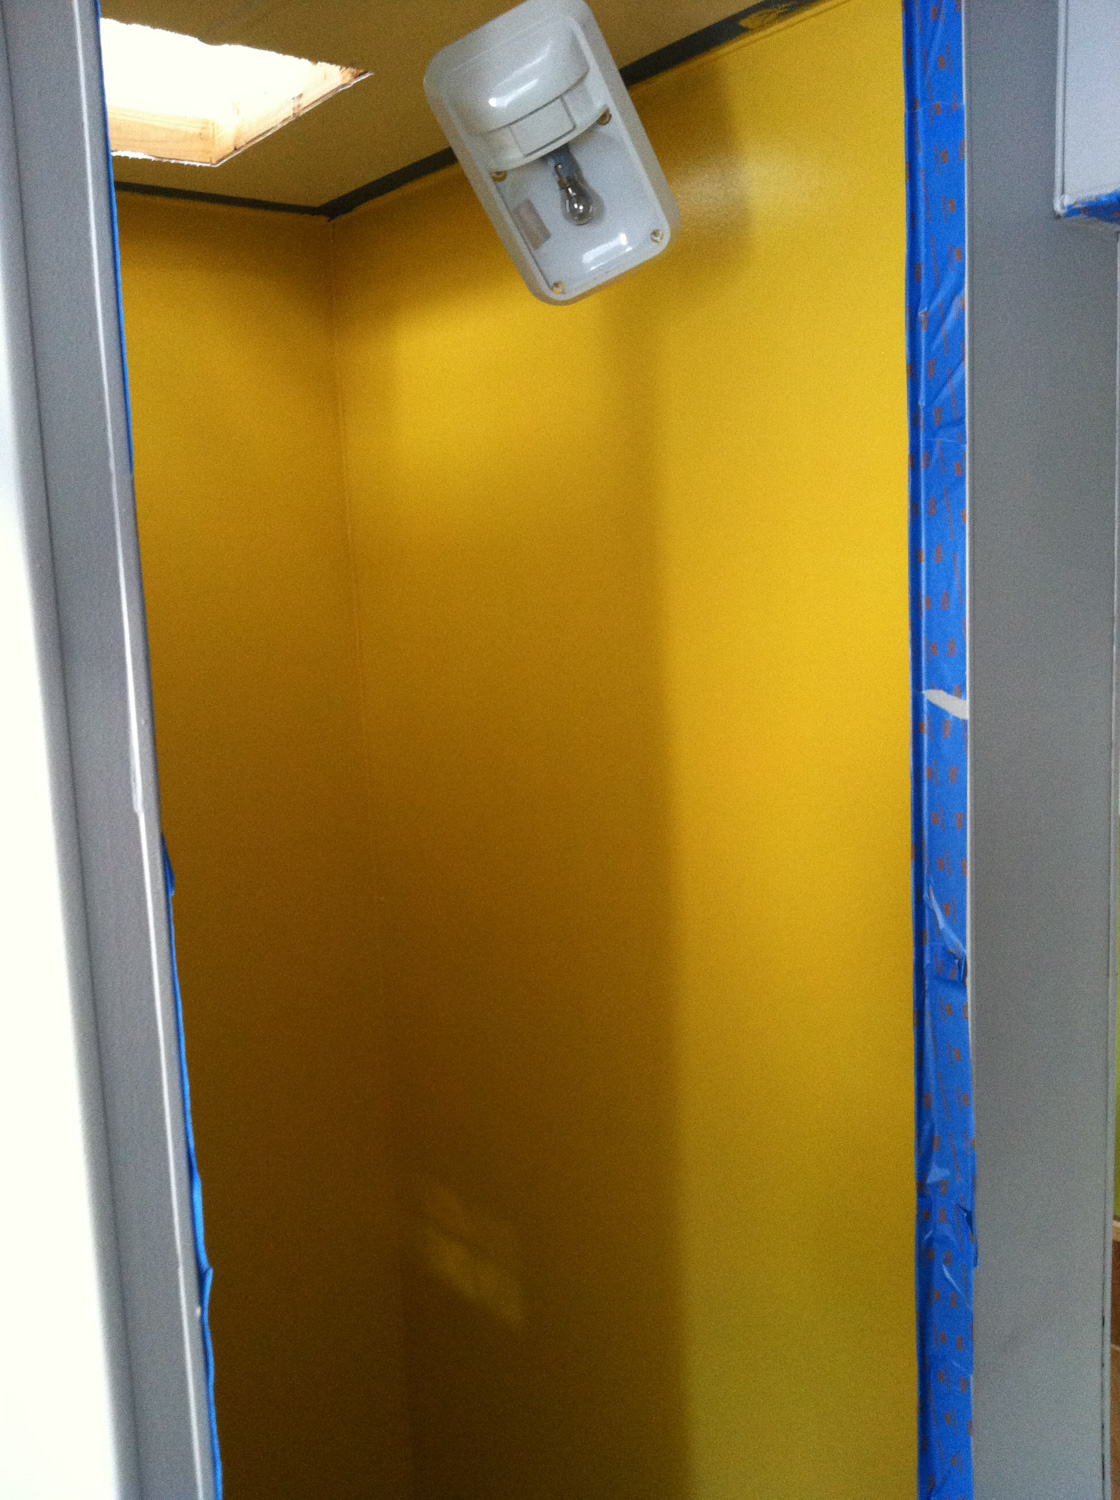 I had the brilliant idea to paint the bathroom yellow. It turned out terrible. The color so was blindingly bright it caused immediate headaches.